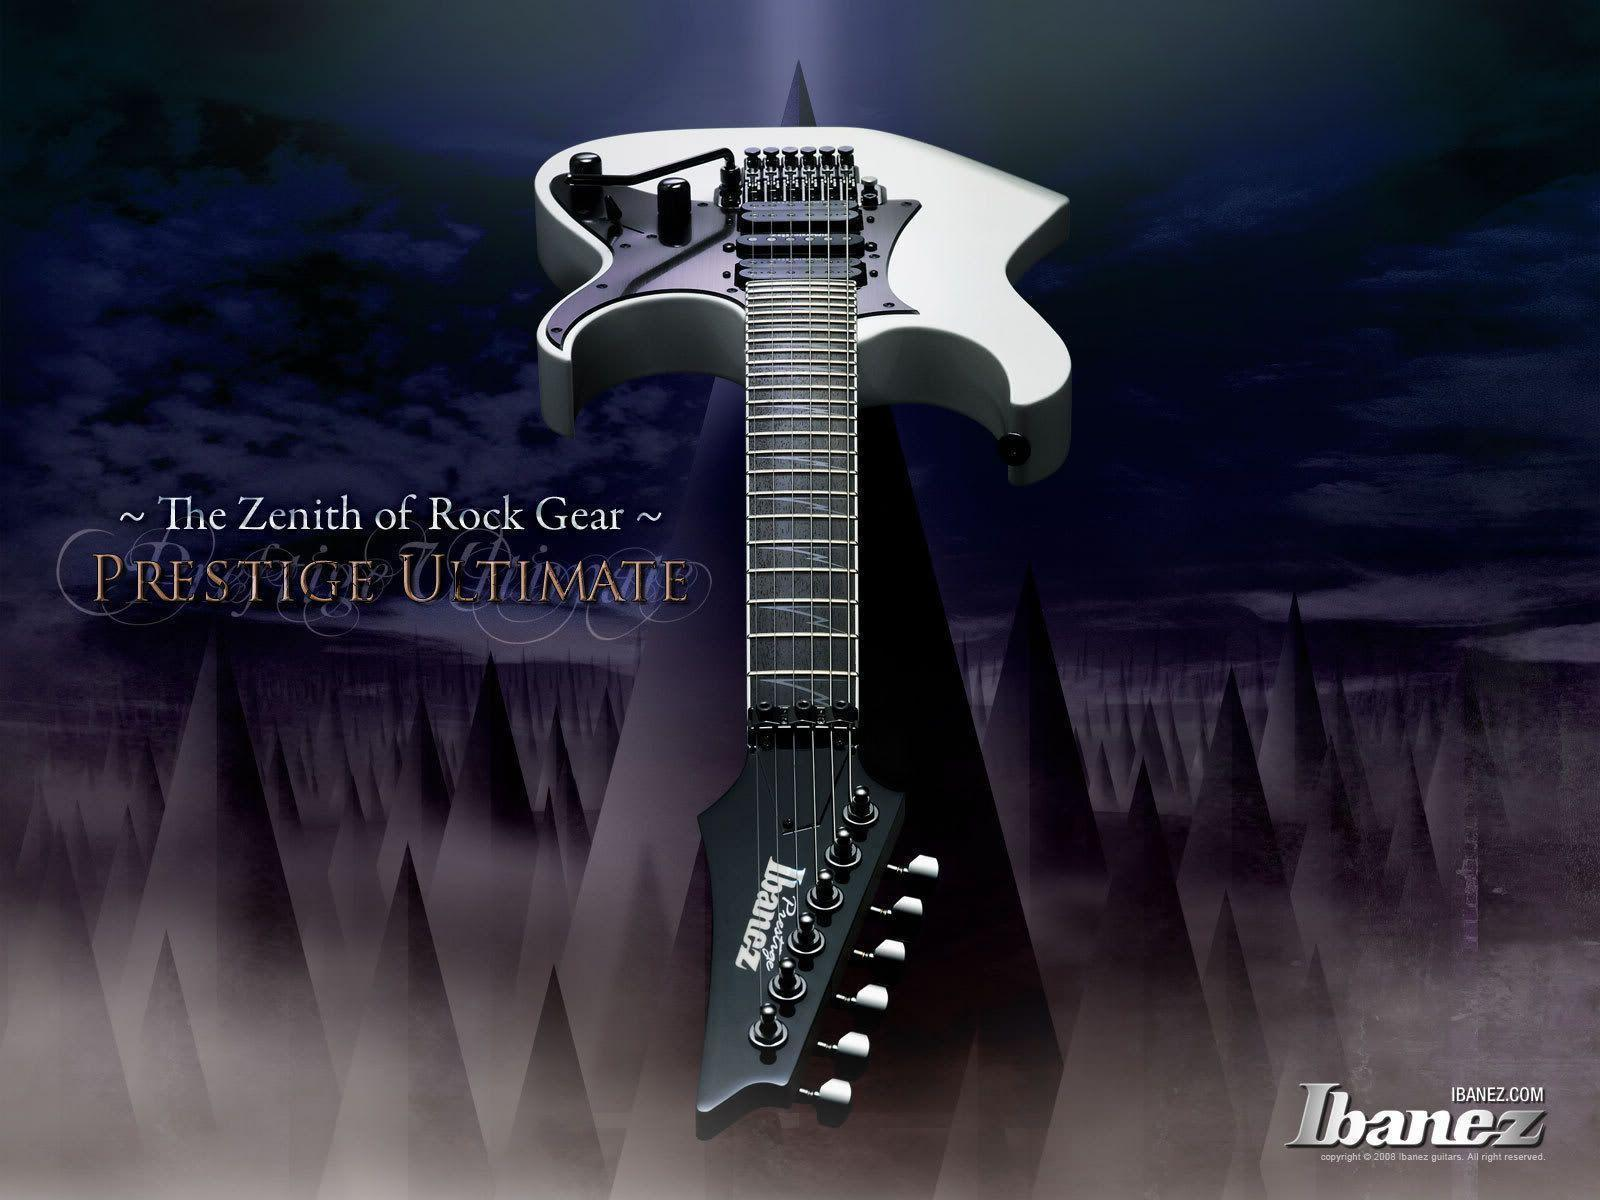 Wallpaper Anime Girl With Guitar Ibanez Wallpapers Wallpaper Cave